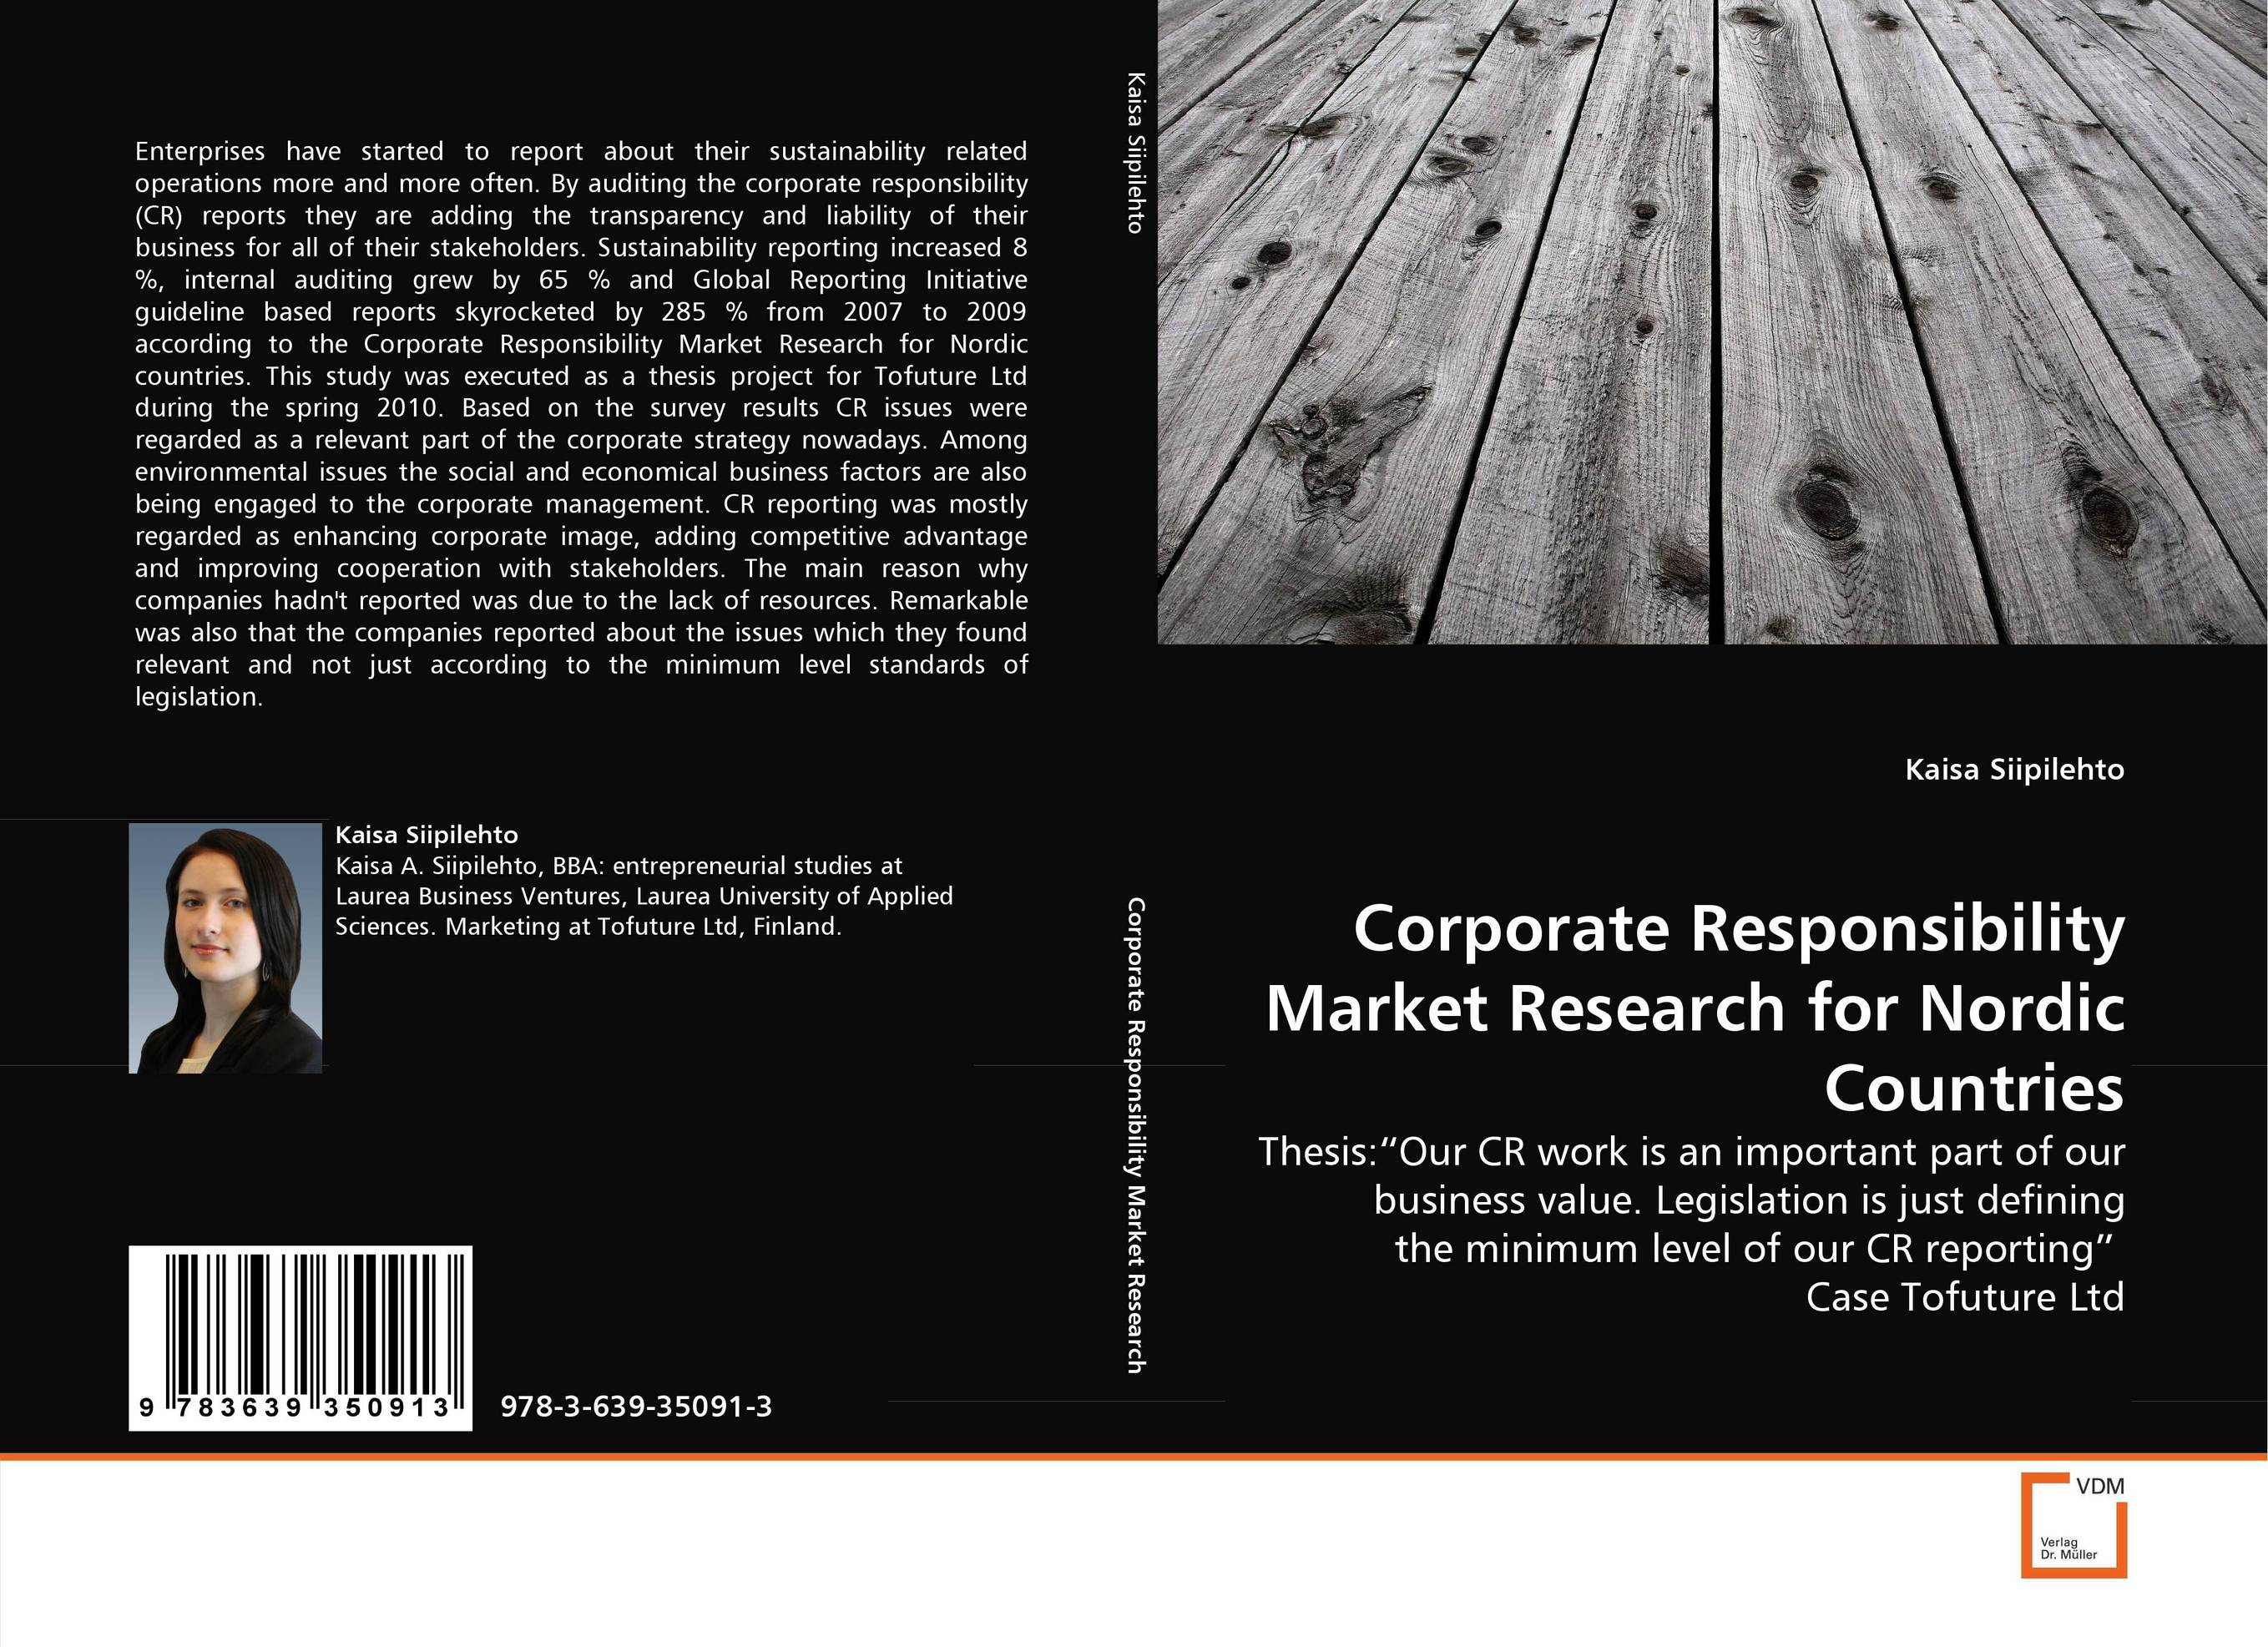 Corporate Responsibility Market Research for Nordic Countries